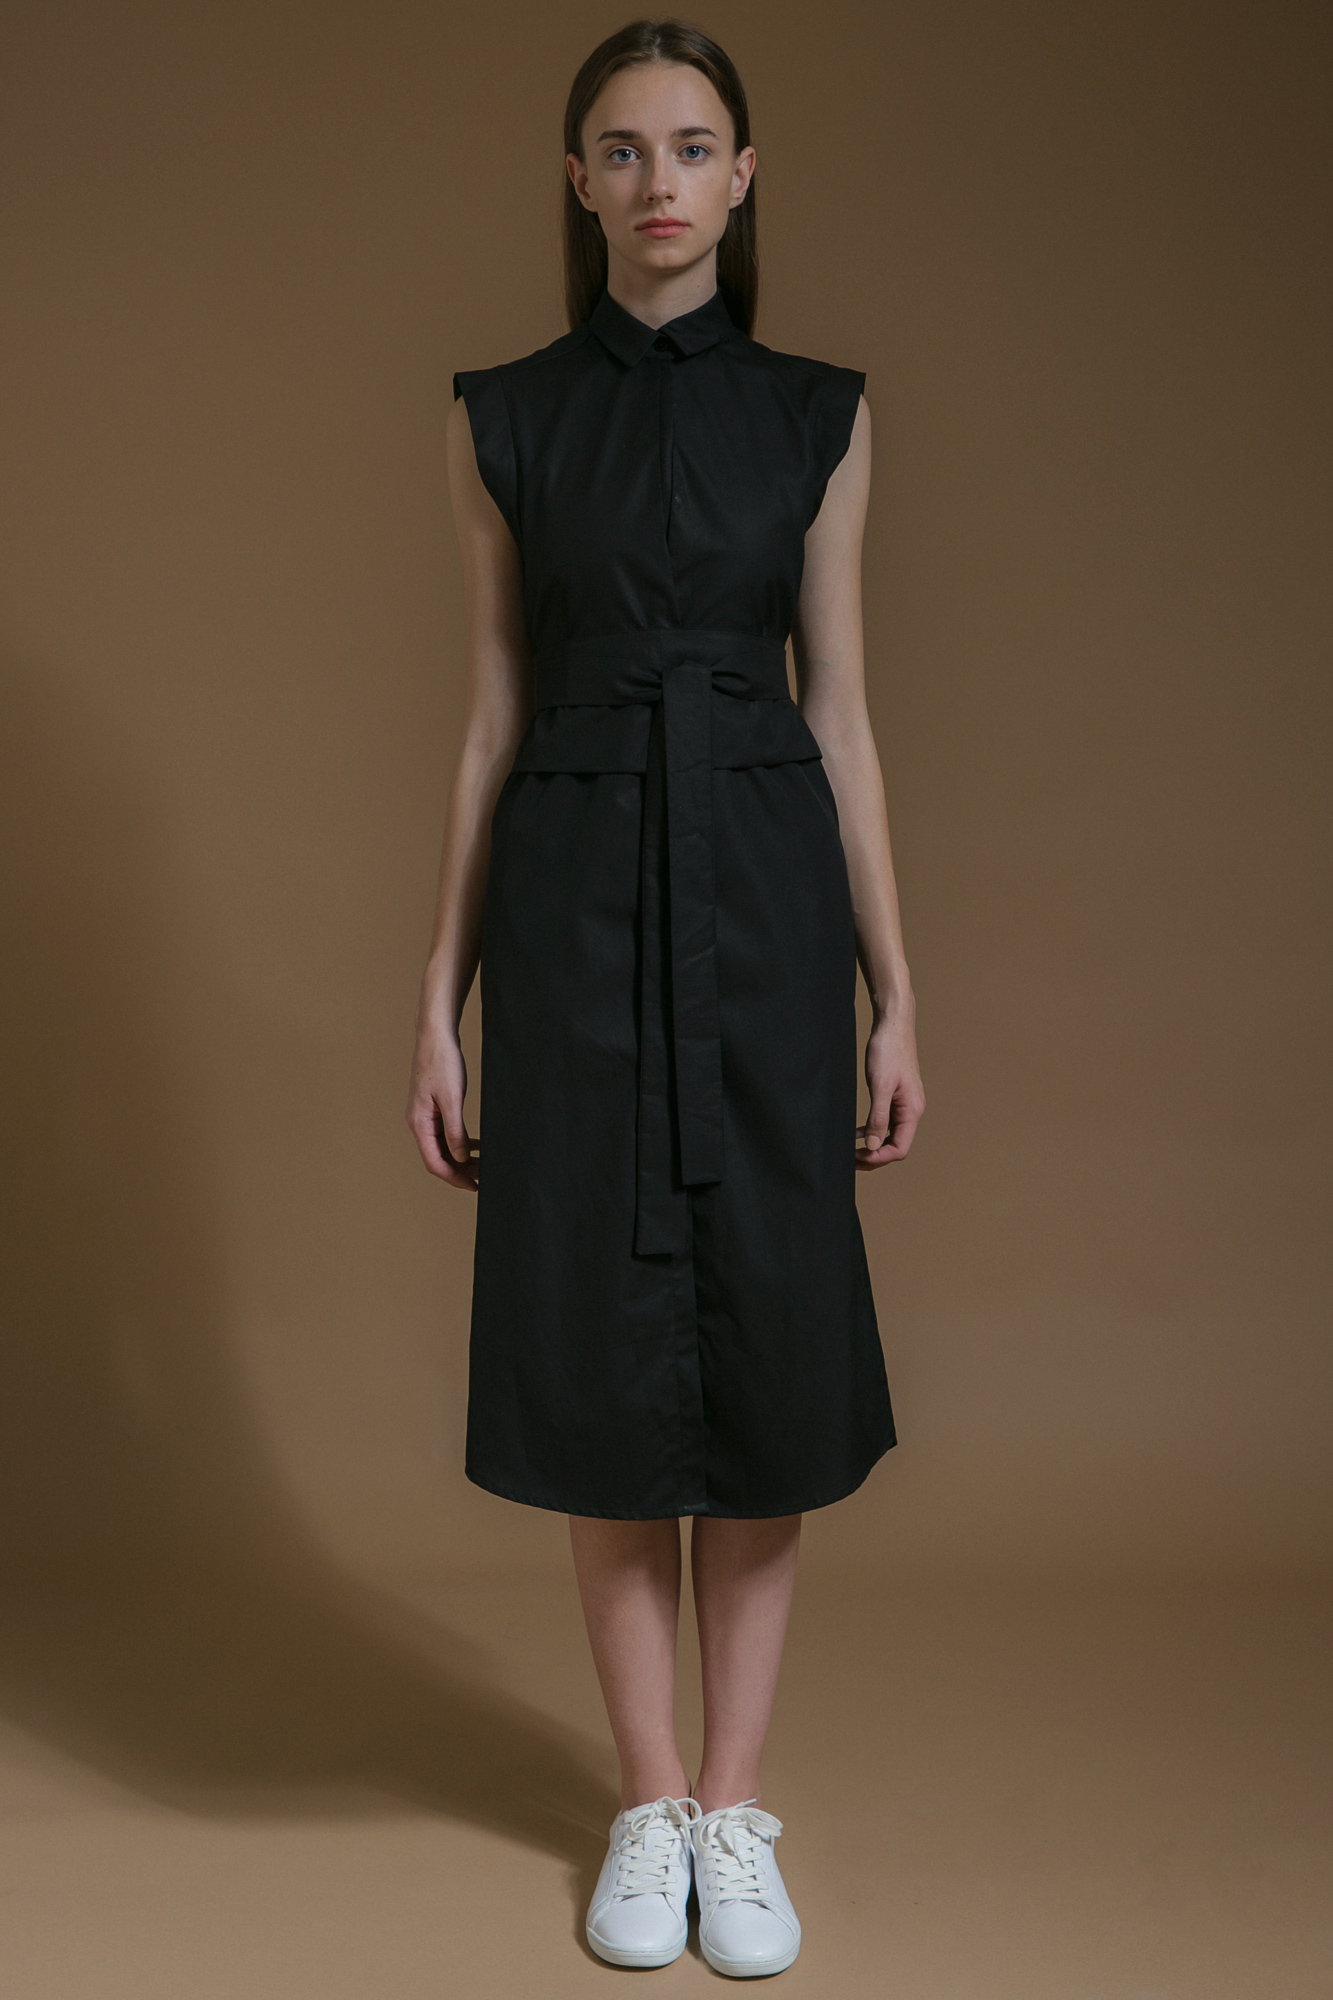 wearenotsisters_wrns_ss17_along-dress_01